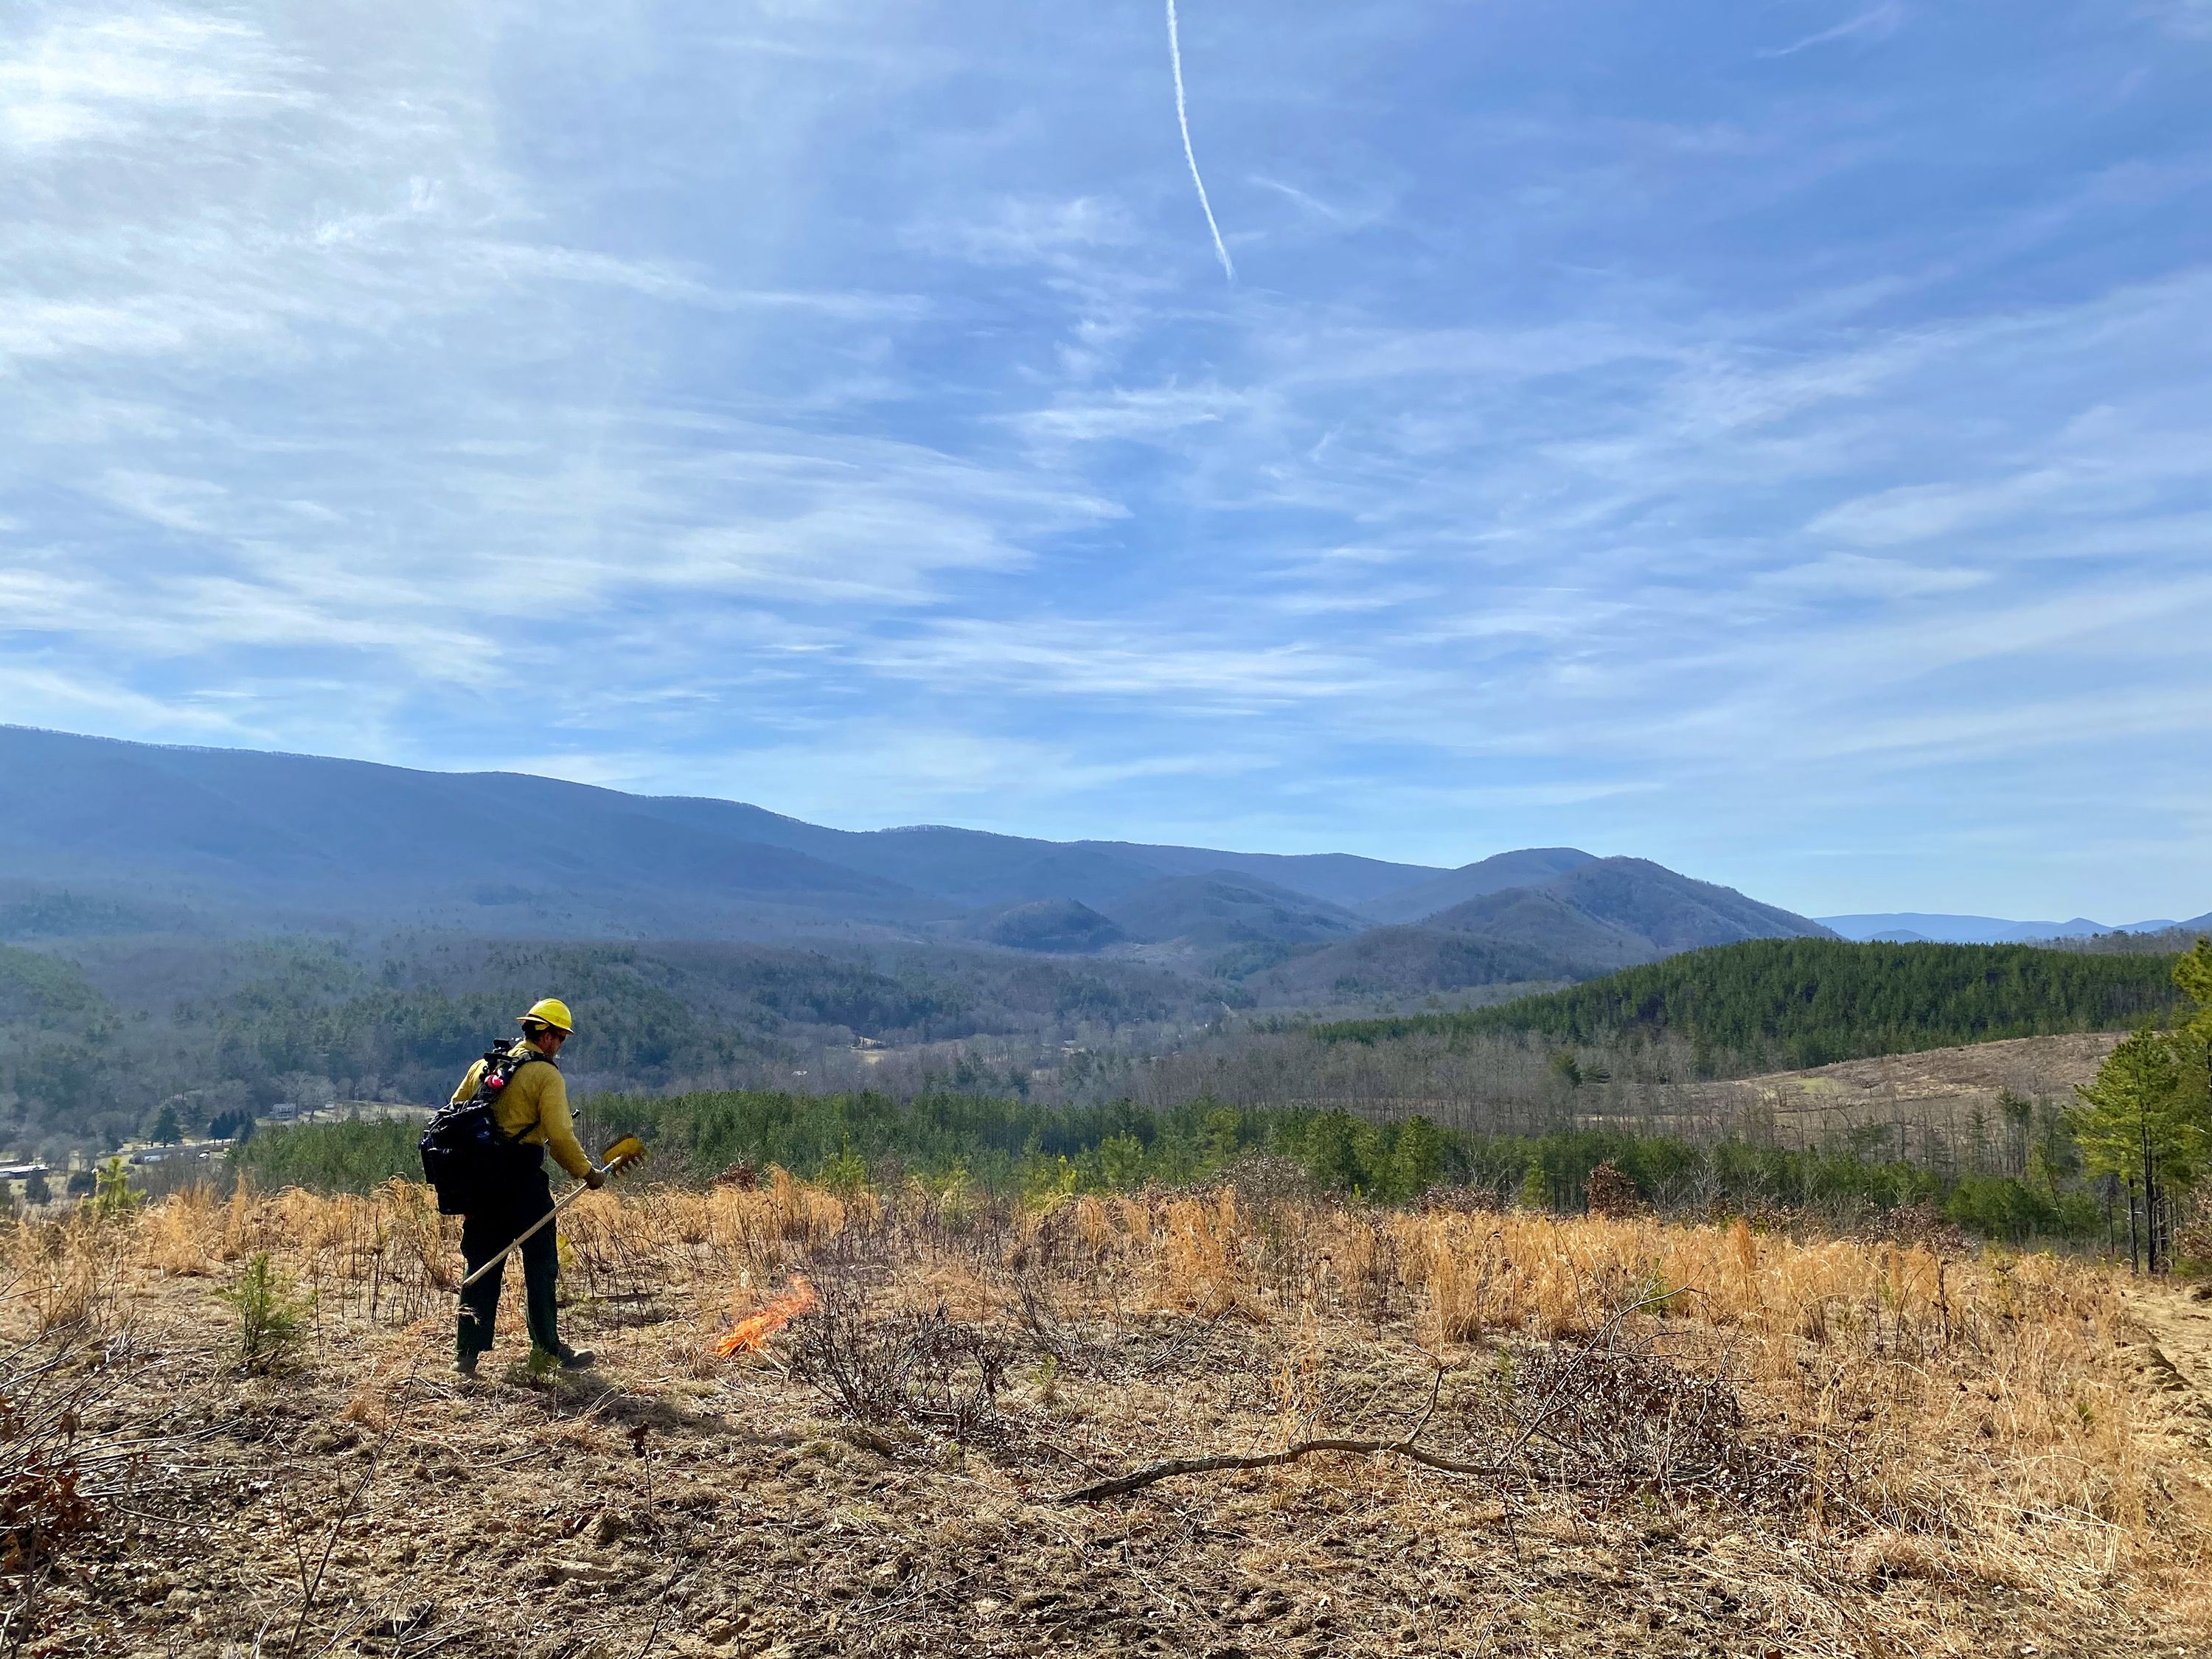 A man wearing yellow fire gear stands in an open field next to a small fire that is burning itself out. Tall mountain ridges line the horizon in the background under a bright blue sky.